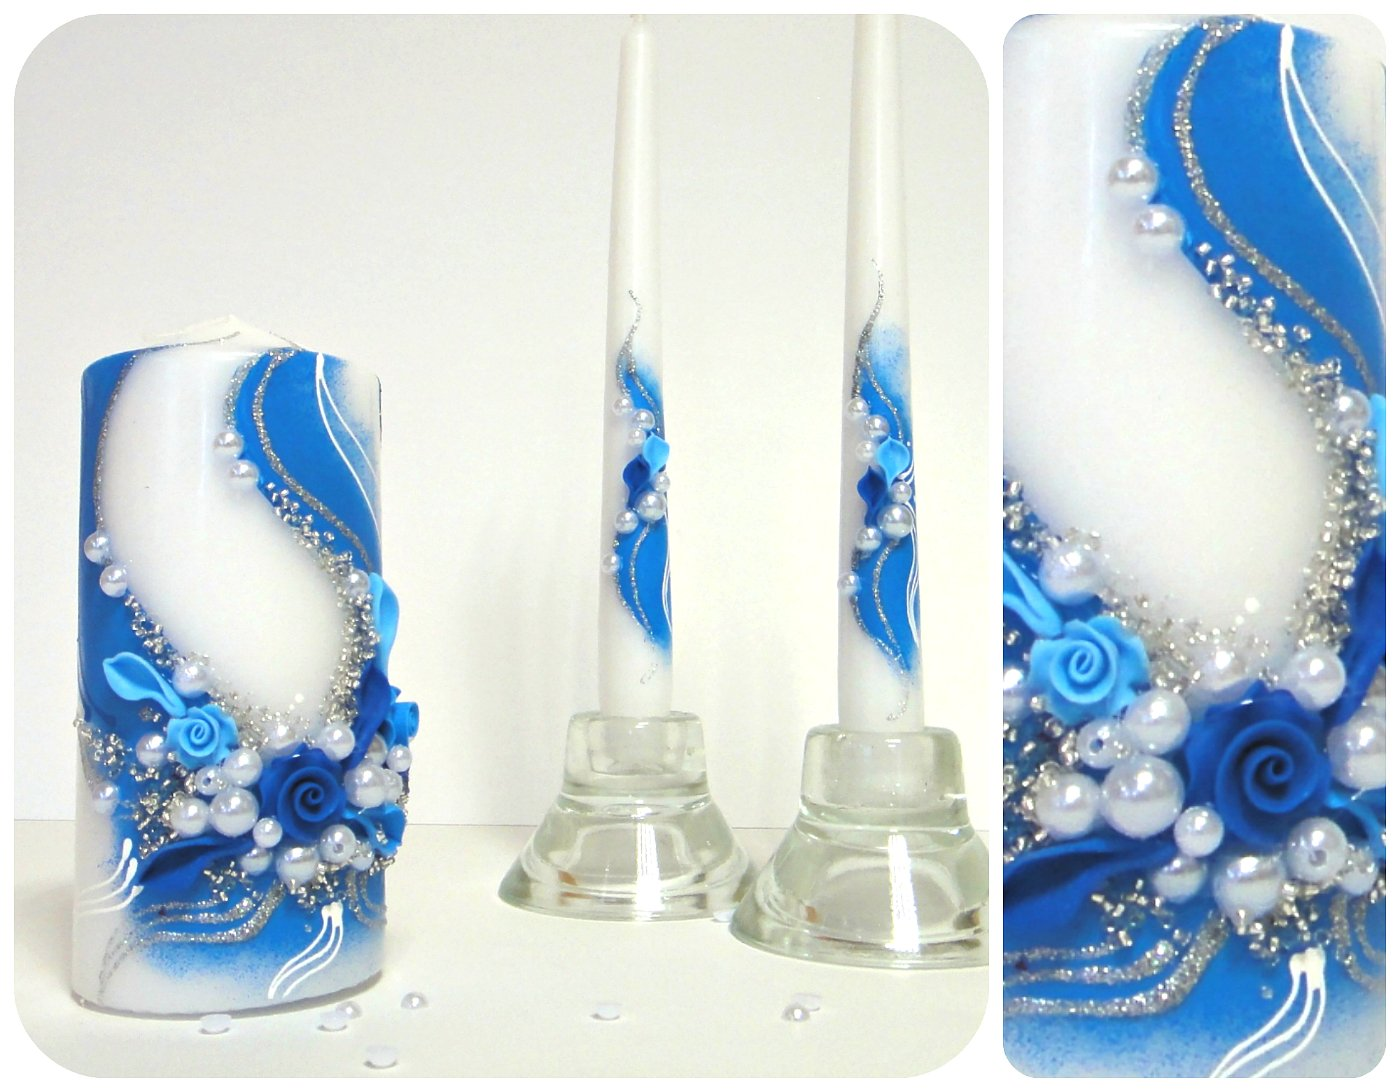 Magik Life Unity Candle Set for Wedding - Wedding décor & Wedding Accessories - Candle Sets - Birthday |Wedding Settings |Ceremony Ideas Party (Blue with Wave)